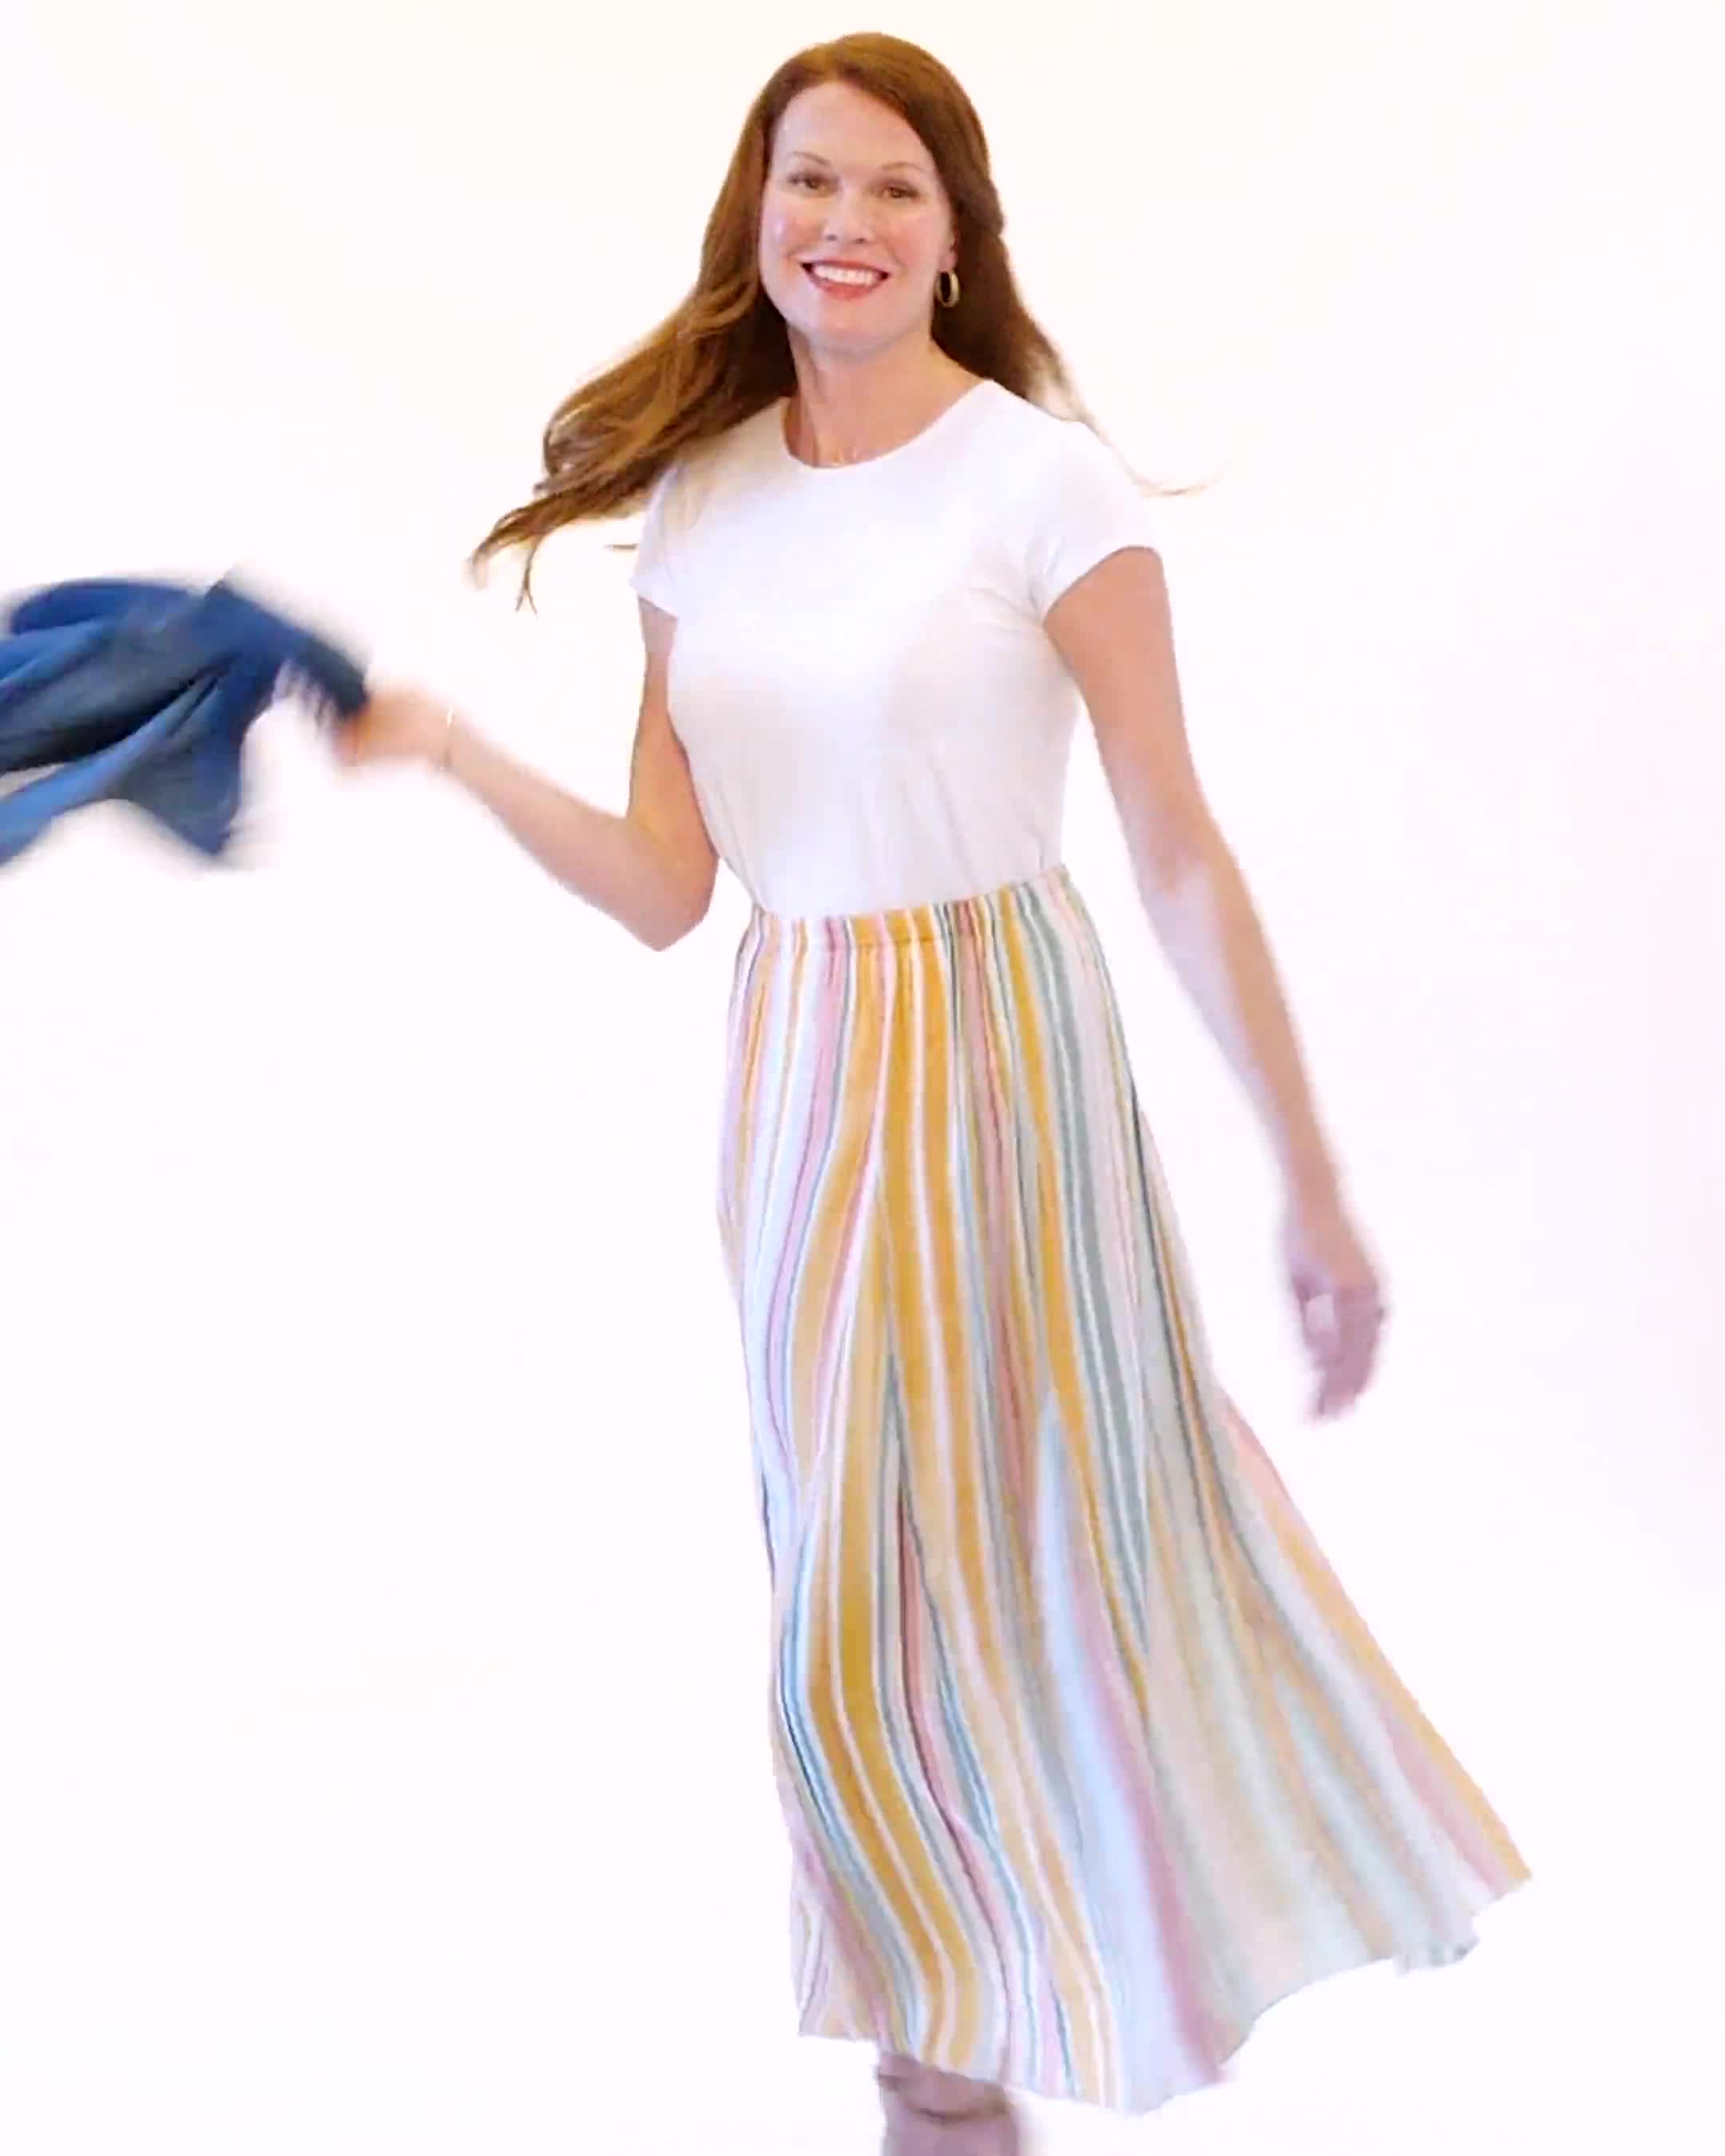 Textured Pull-On Skirt - Video